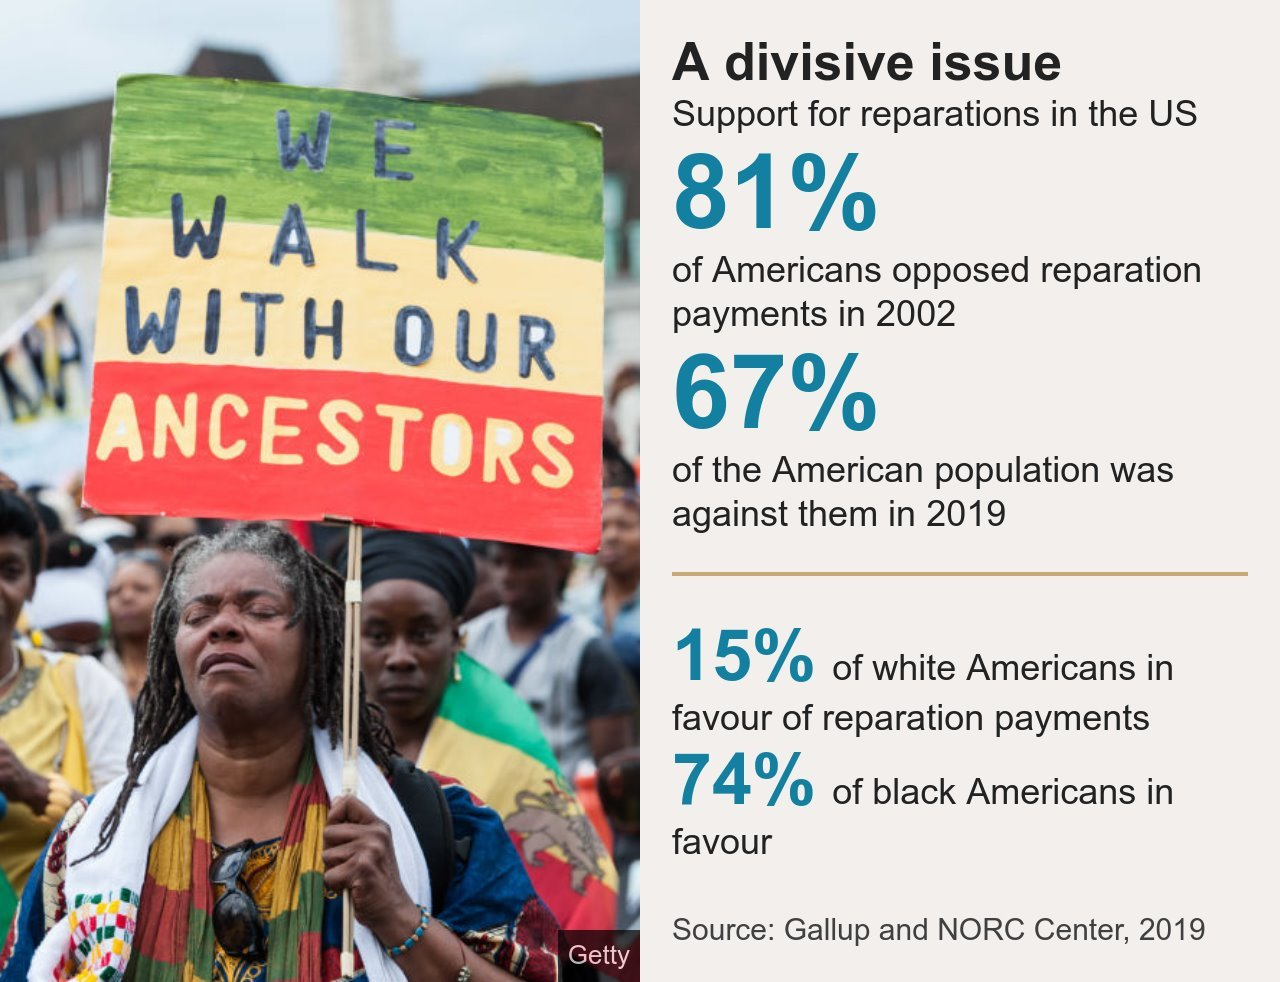 Data picture showing public opinion in the US regarding reparations